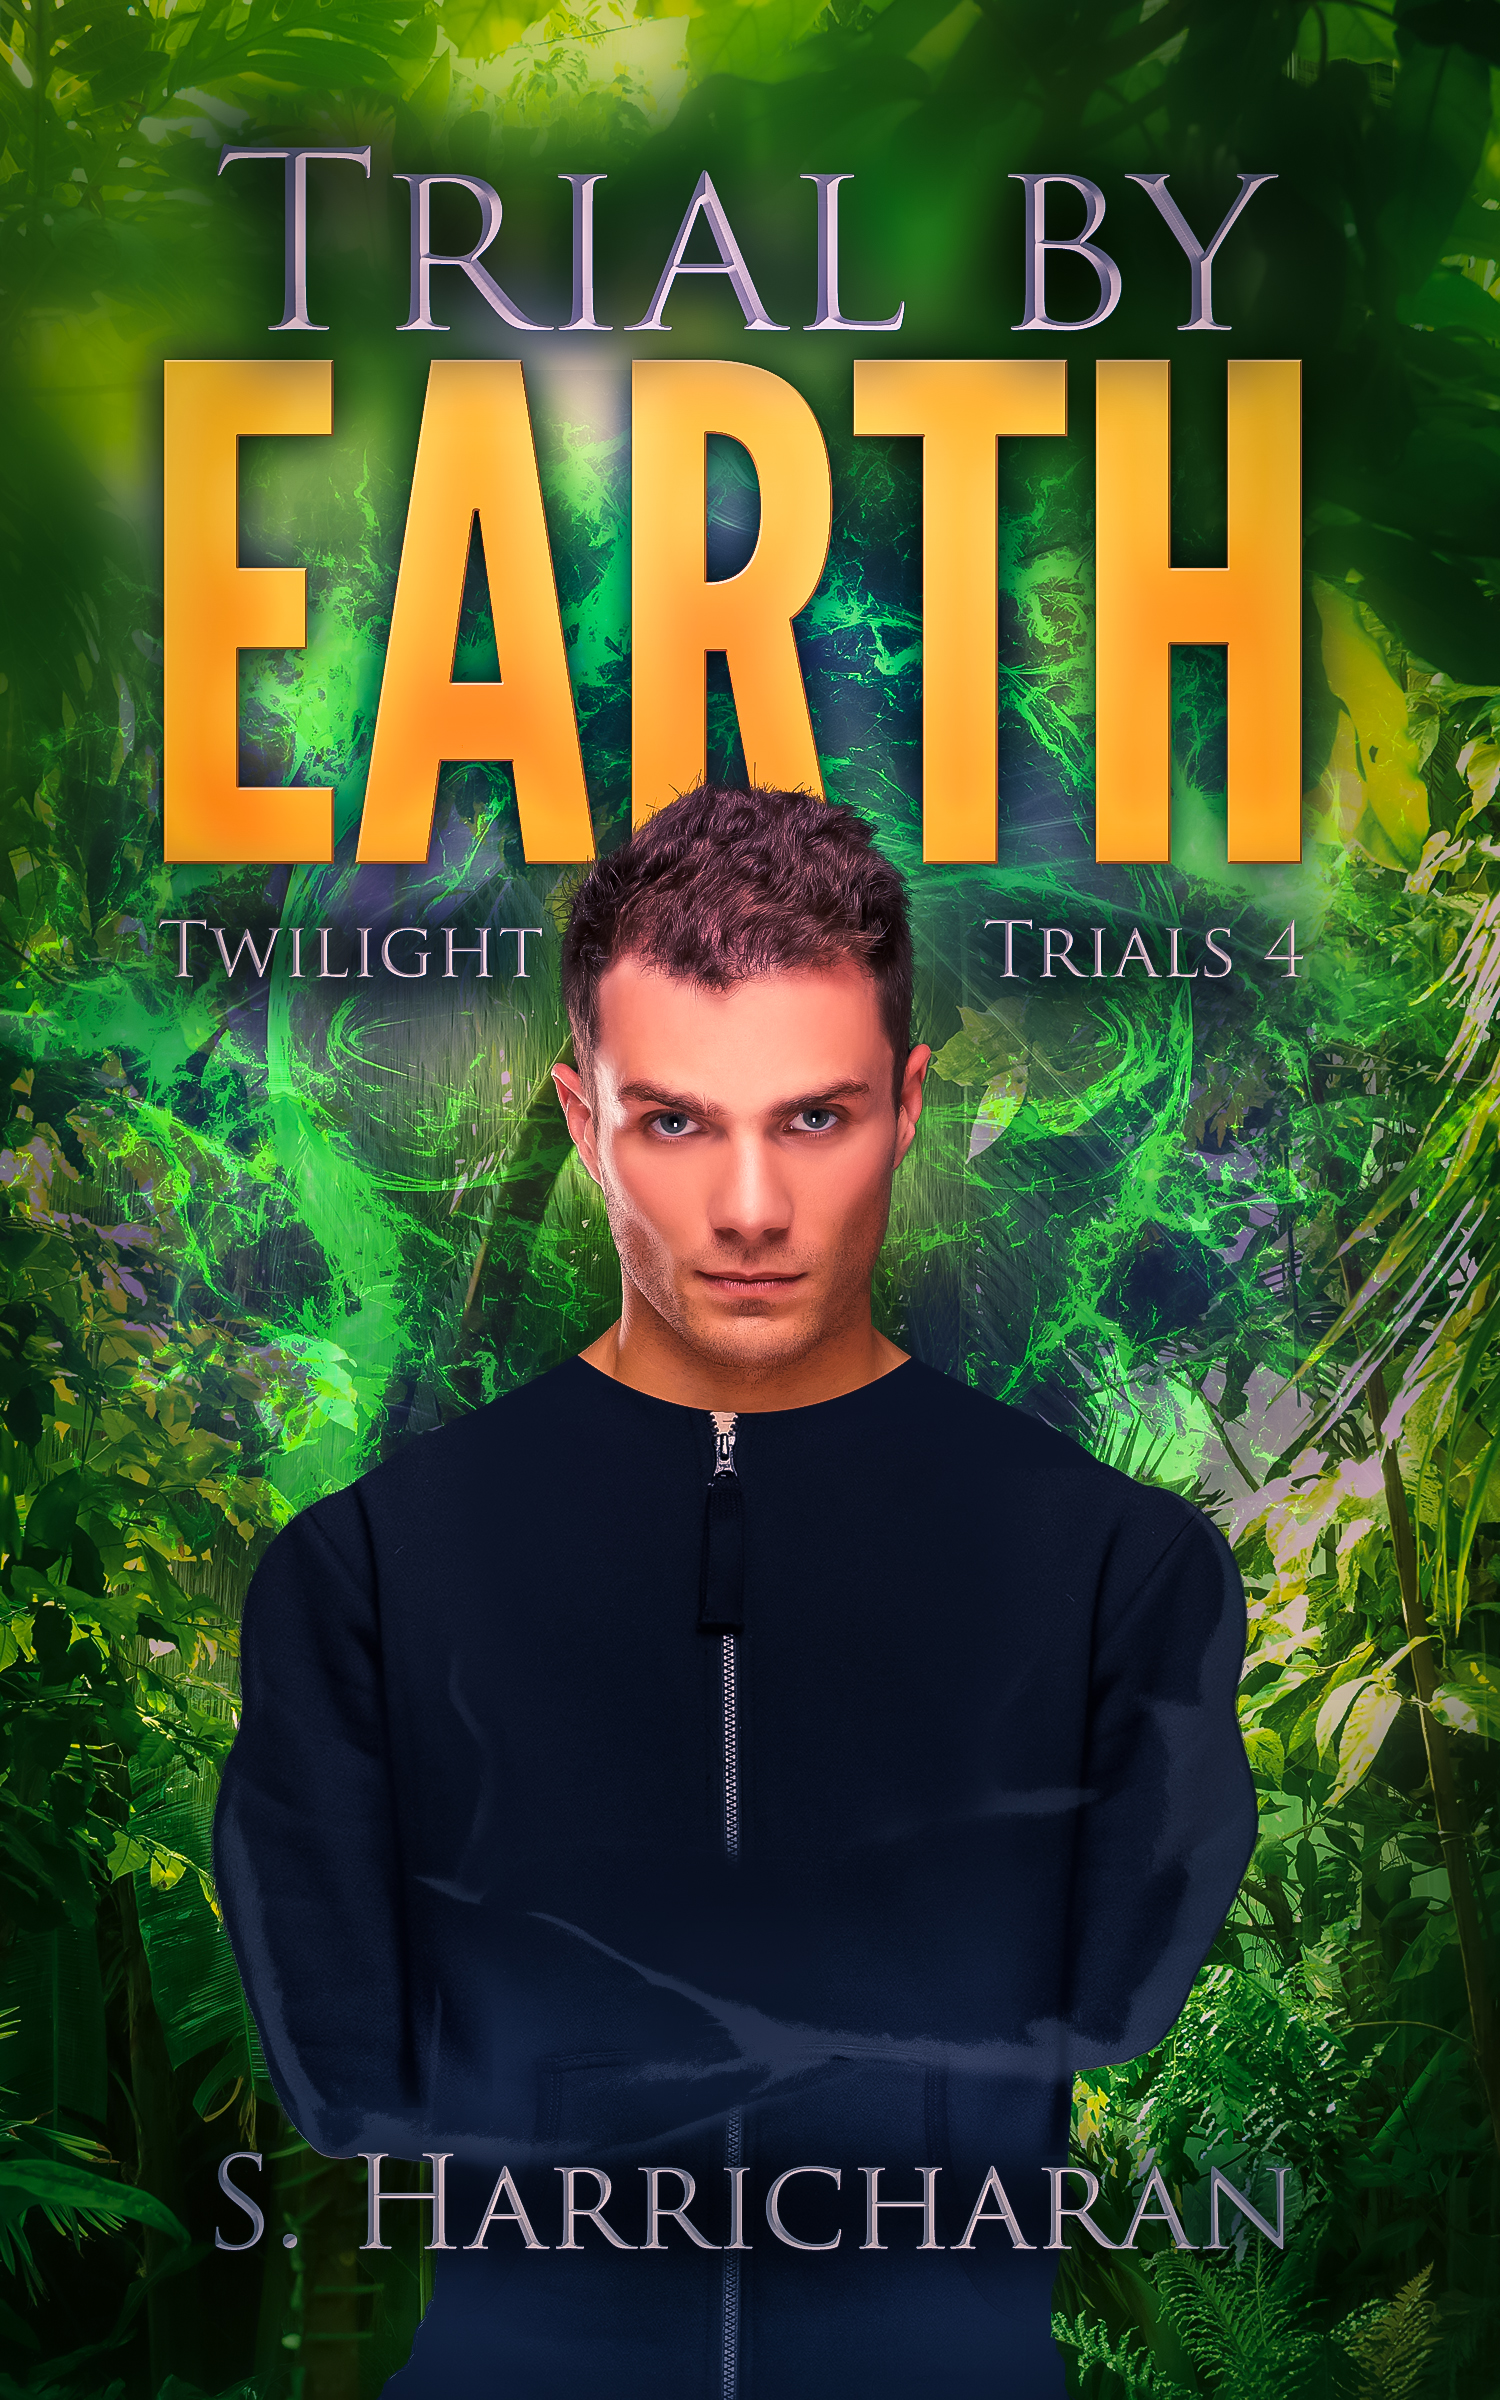 Trial by Earth Autographed Print Book